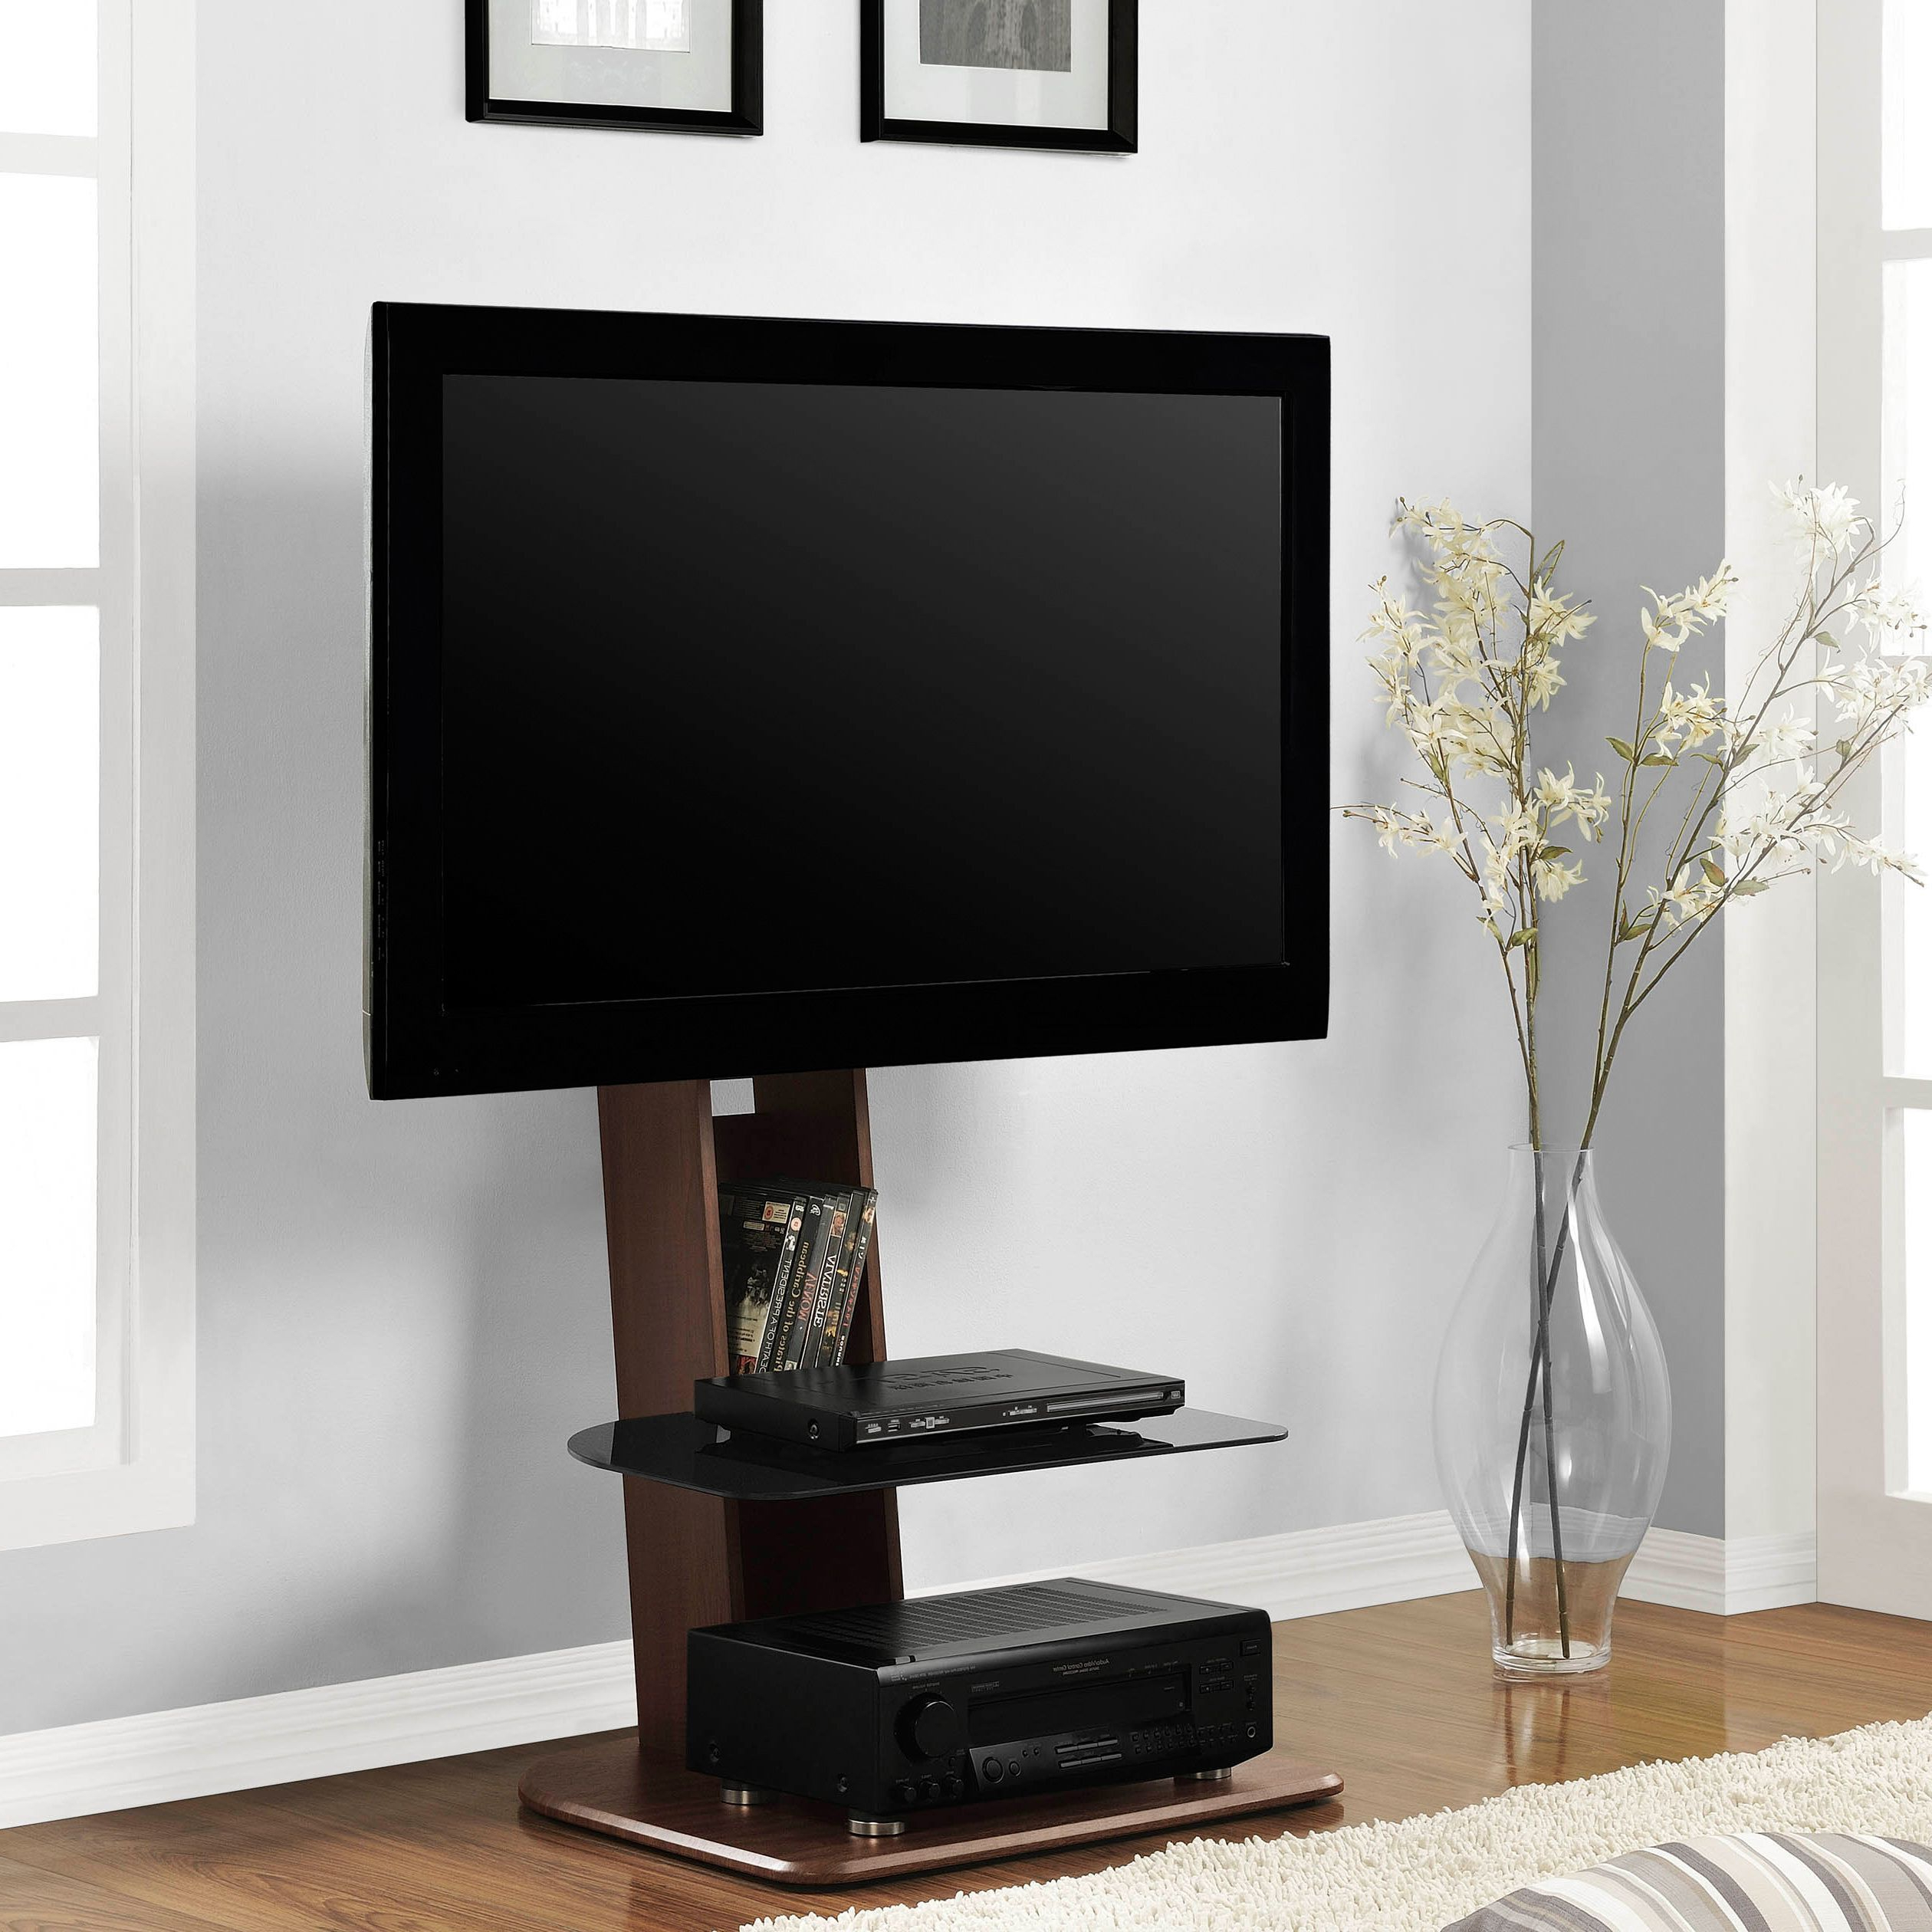 Get The Skinny On This Space Saving Tv Stand Featuring A Streamlined Within Latest Sleek Tv Stands (View 2 of 20)